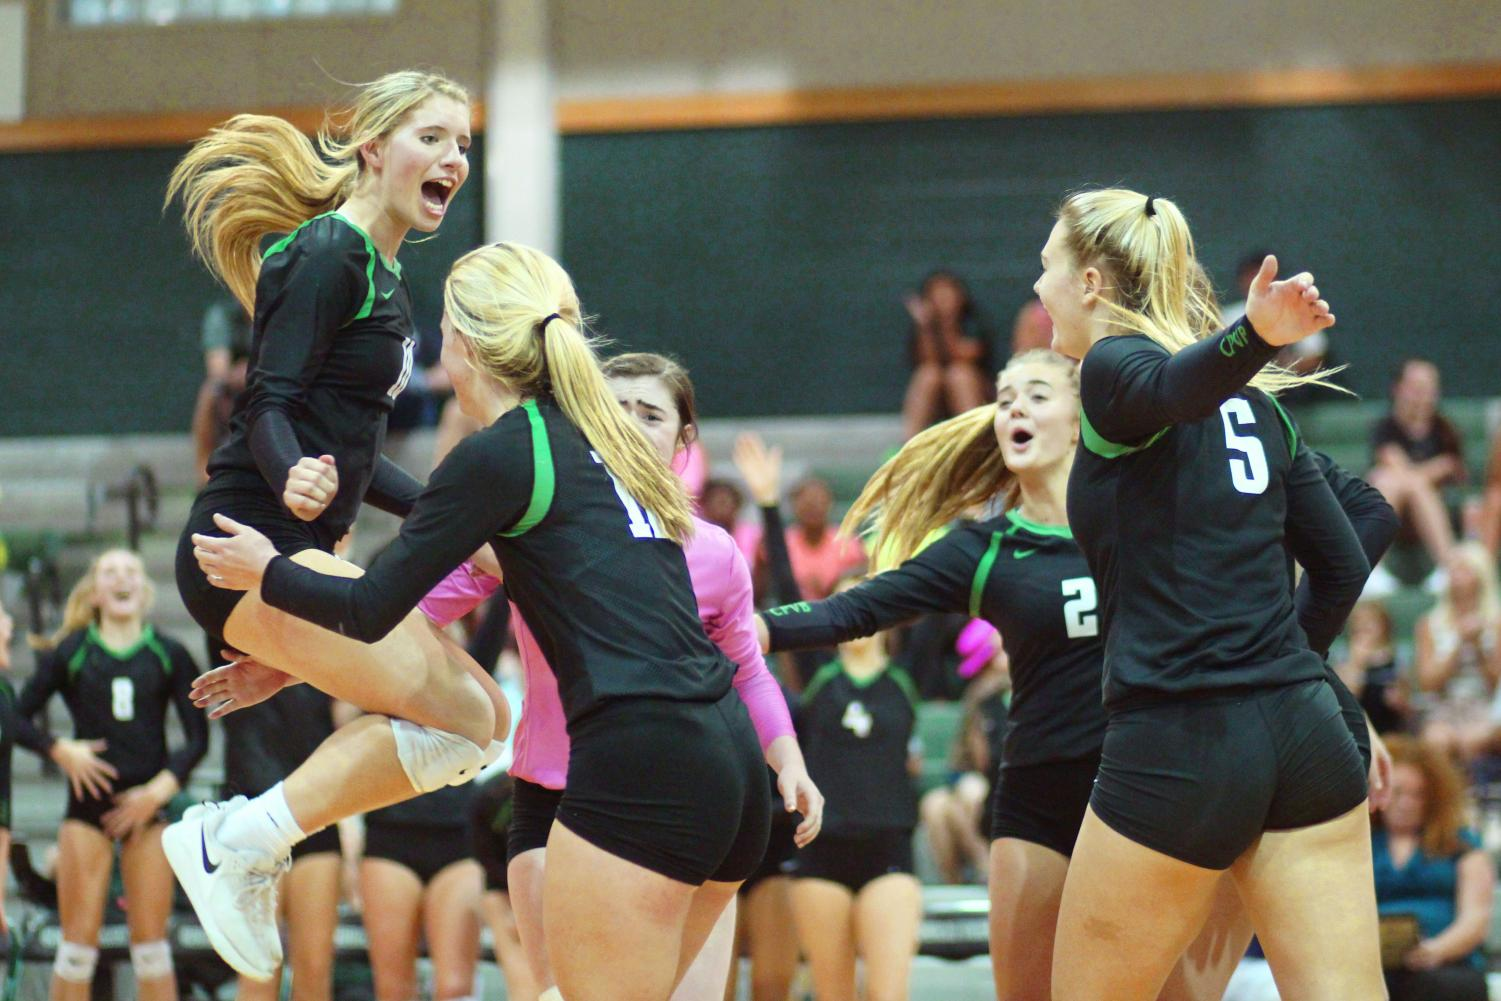 Jumping for joy, junior Kaitlin Davis and the volleyball team celebrate scoring a point at the game against Rouse on Sept. 27. Wins like these are what propelled the team to Regional Semifinals.